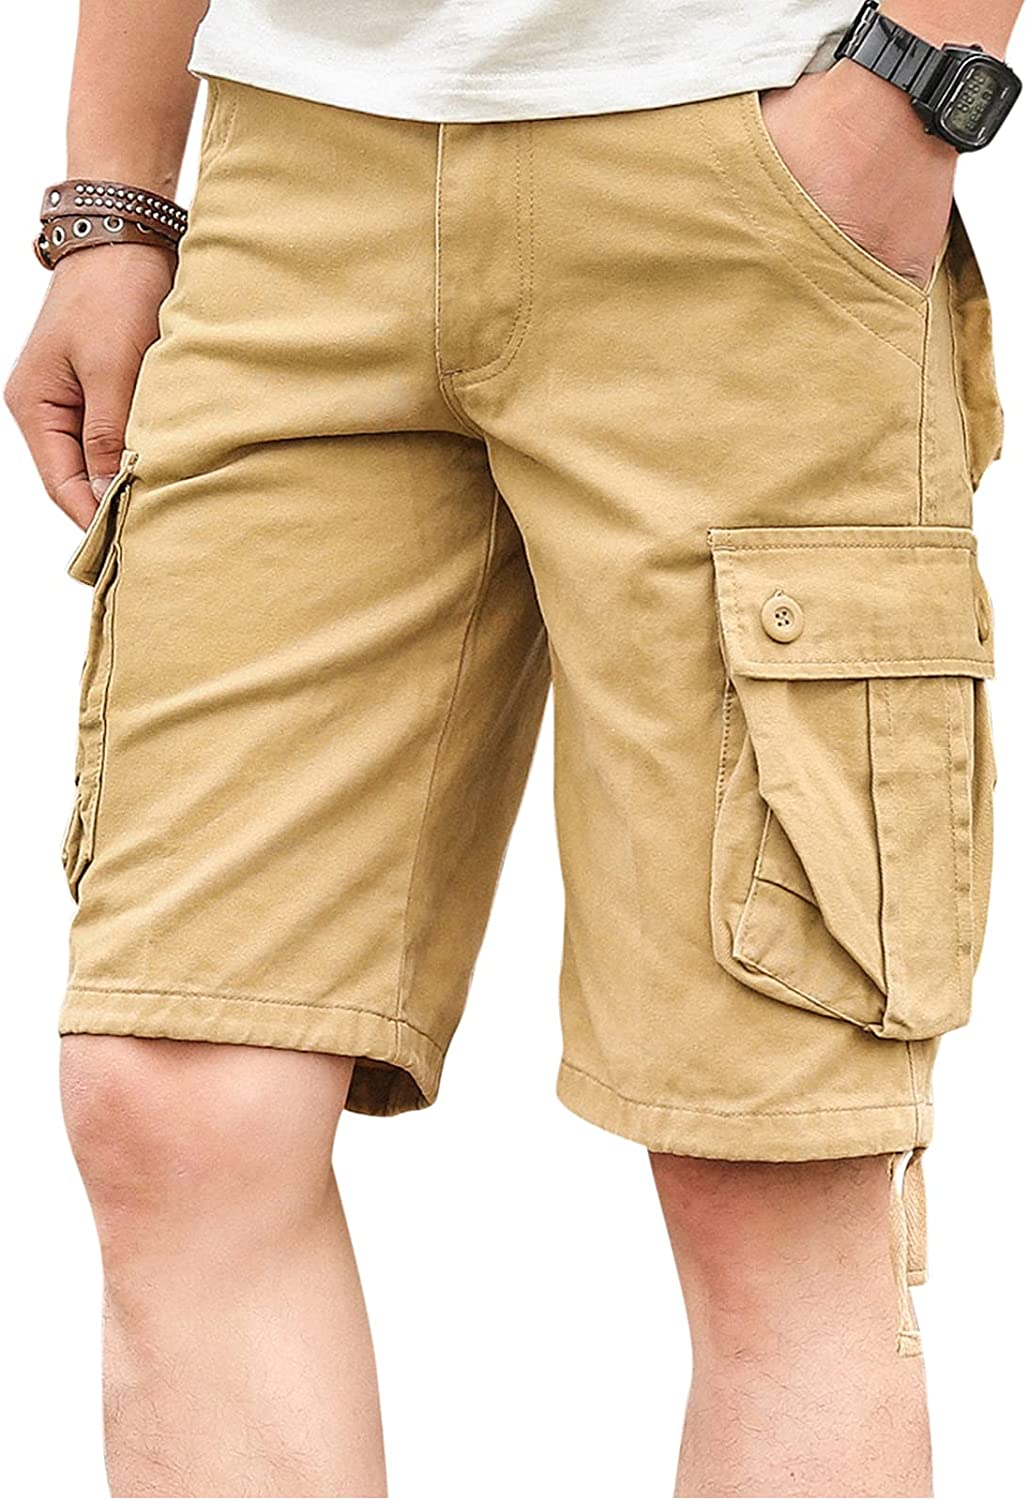 jambeau Men Cargo Shorts Relaxed Fit Multi Pockets Twill Camouflage Outdoor Casual Shorts